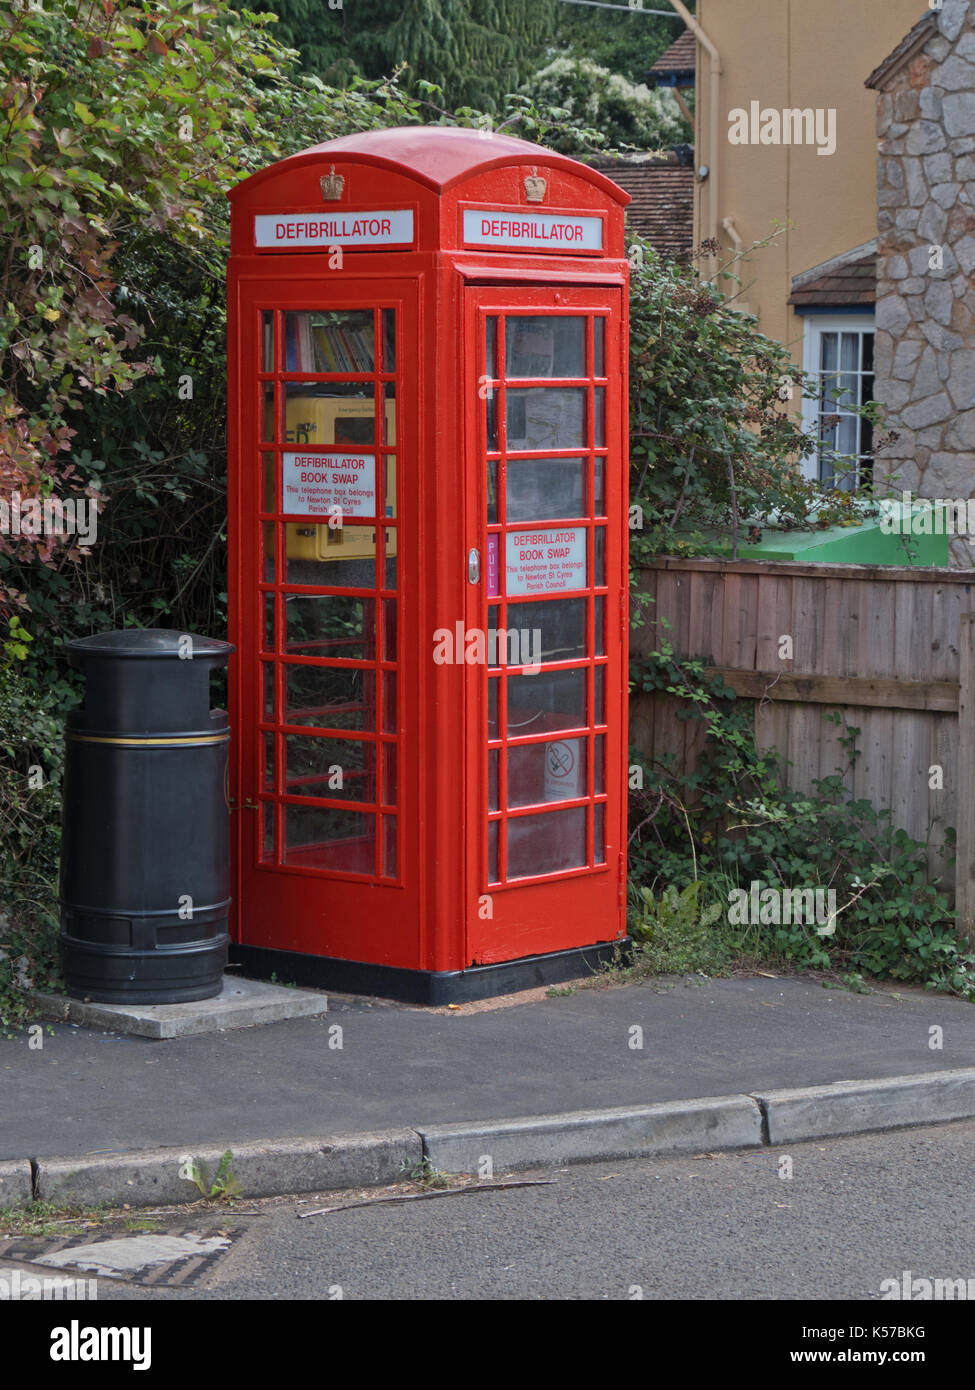 A disused public telephone box put to dual use housing an automated defibrillator for treating cases of cardiac arrest, as well books for exchange - Stock Image